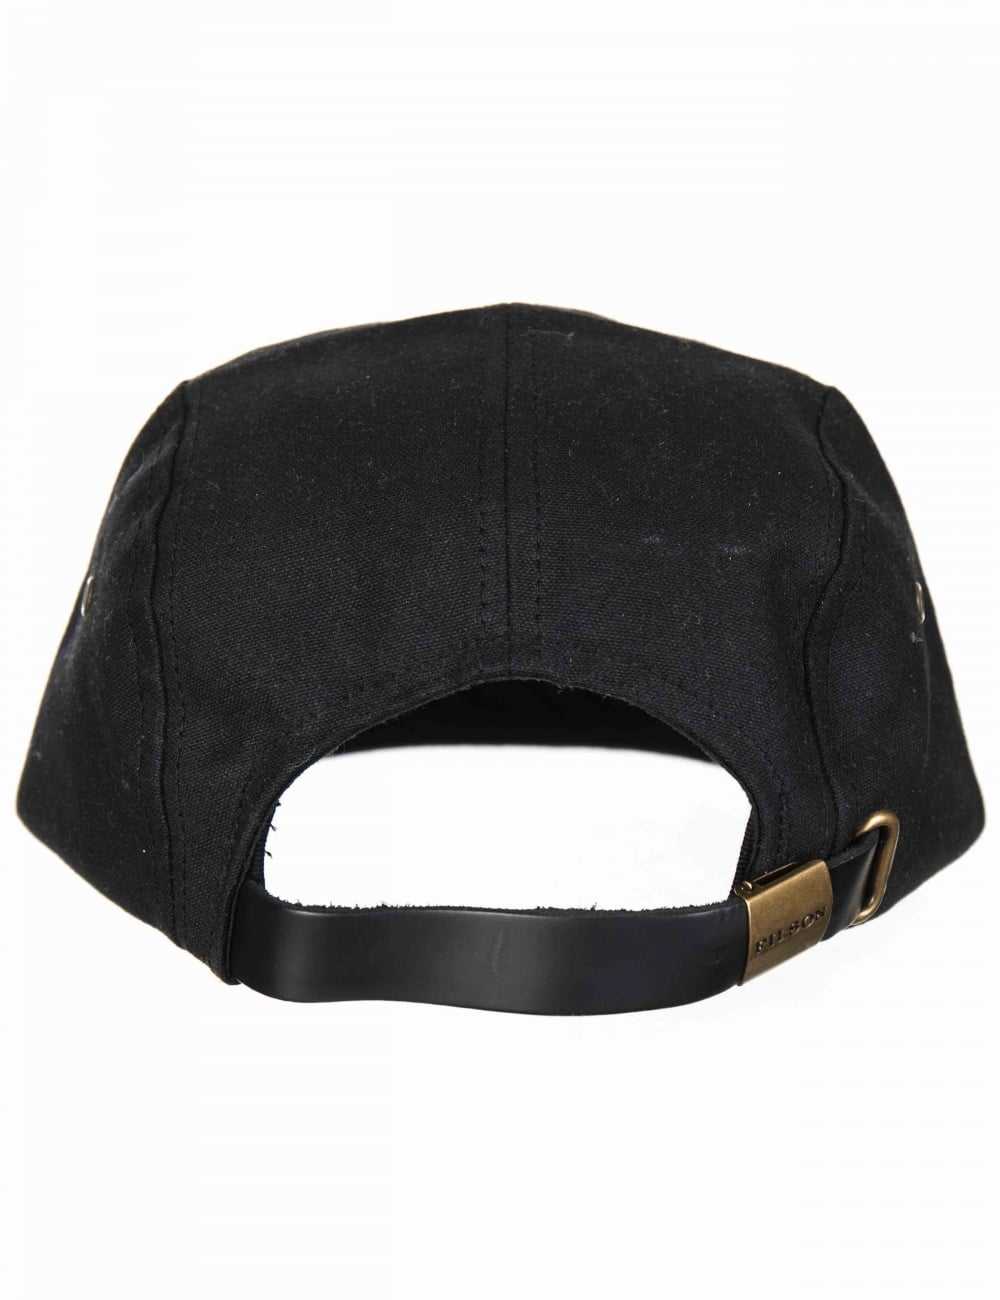 3d33f1fbfd4e0 Filson Waxed Leather Patch 5 Panel Hat - Black - Hat Shop from Fat ...